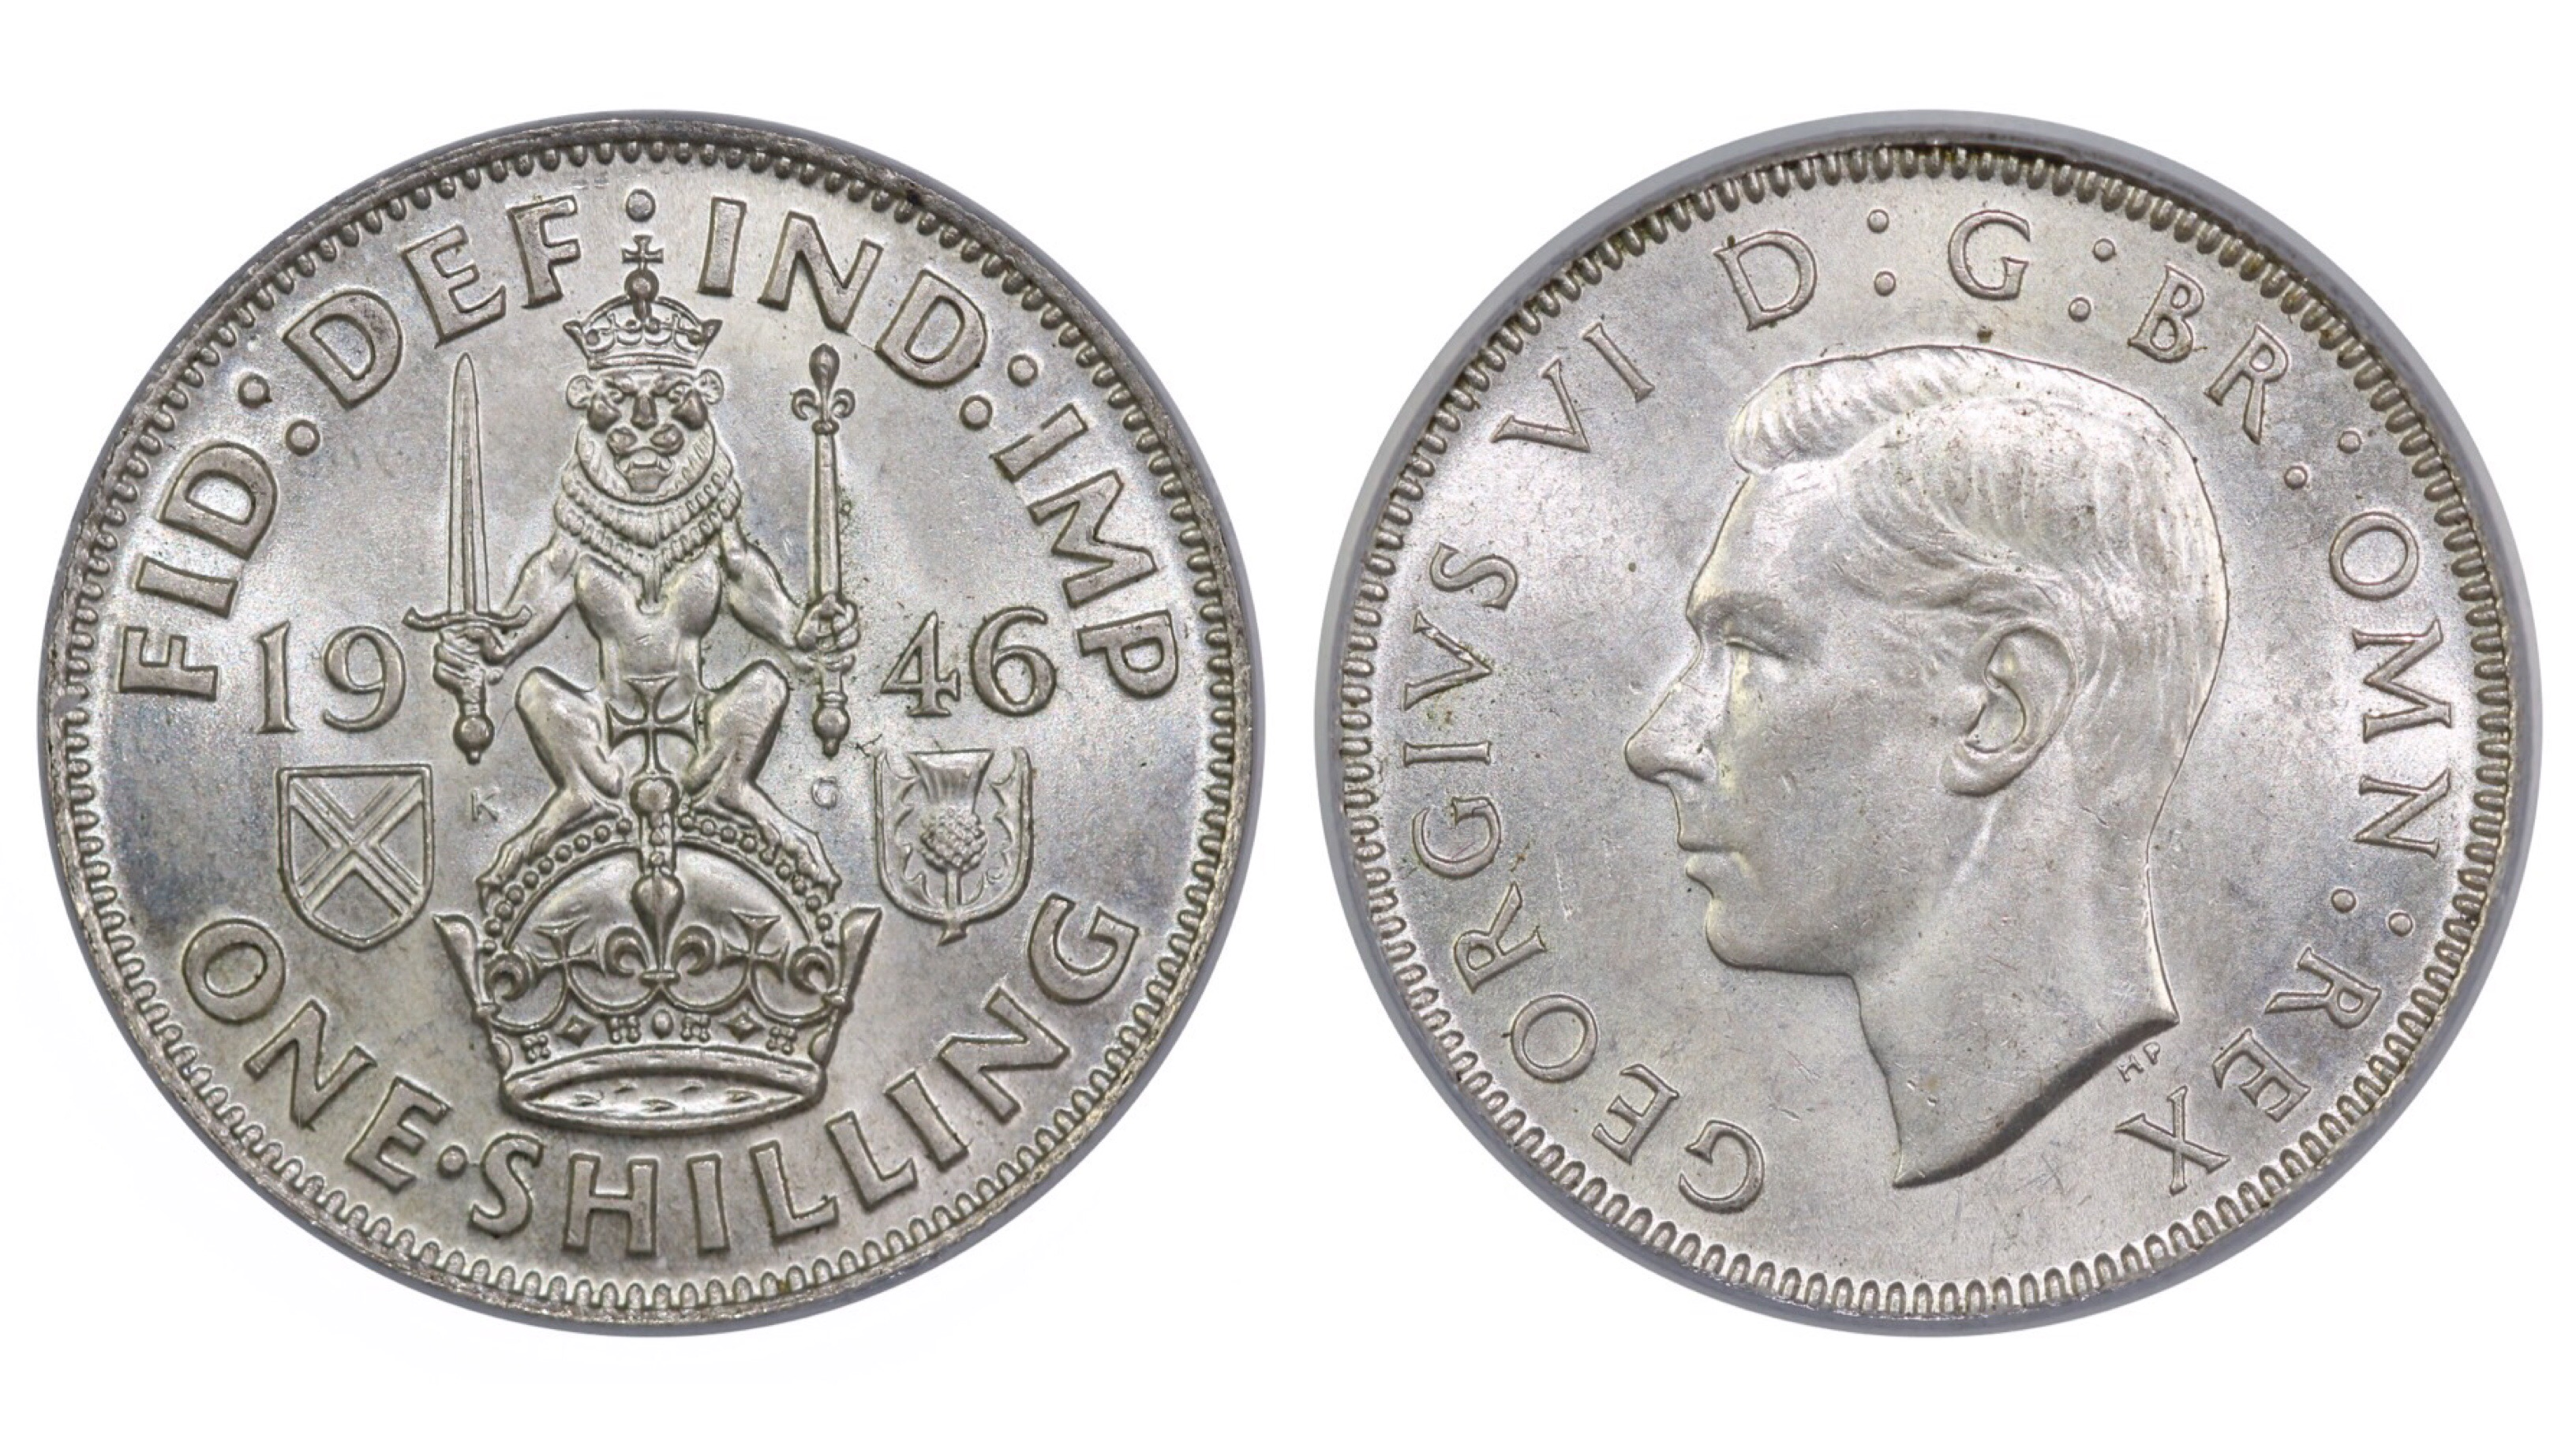 1946 'Scottish' Shilling, CGS 75, George VI, ESC 1471, UIN 25676